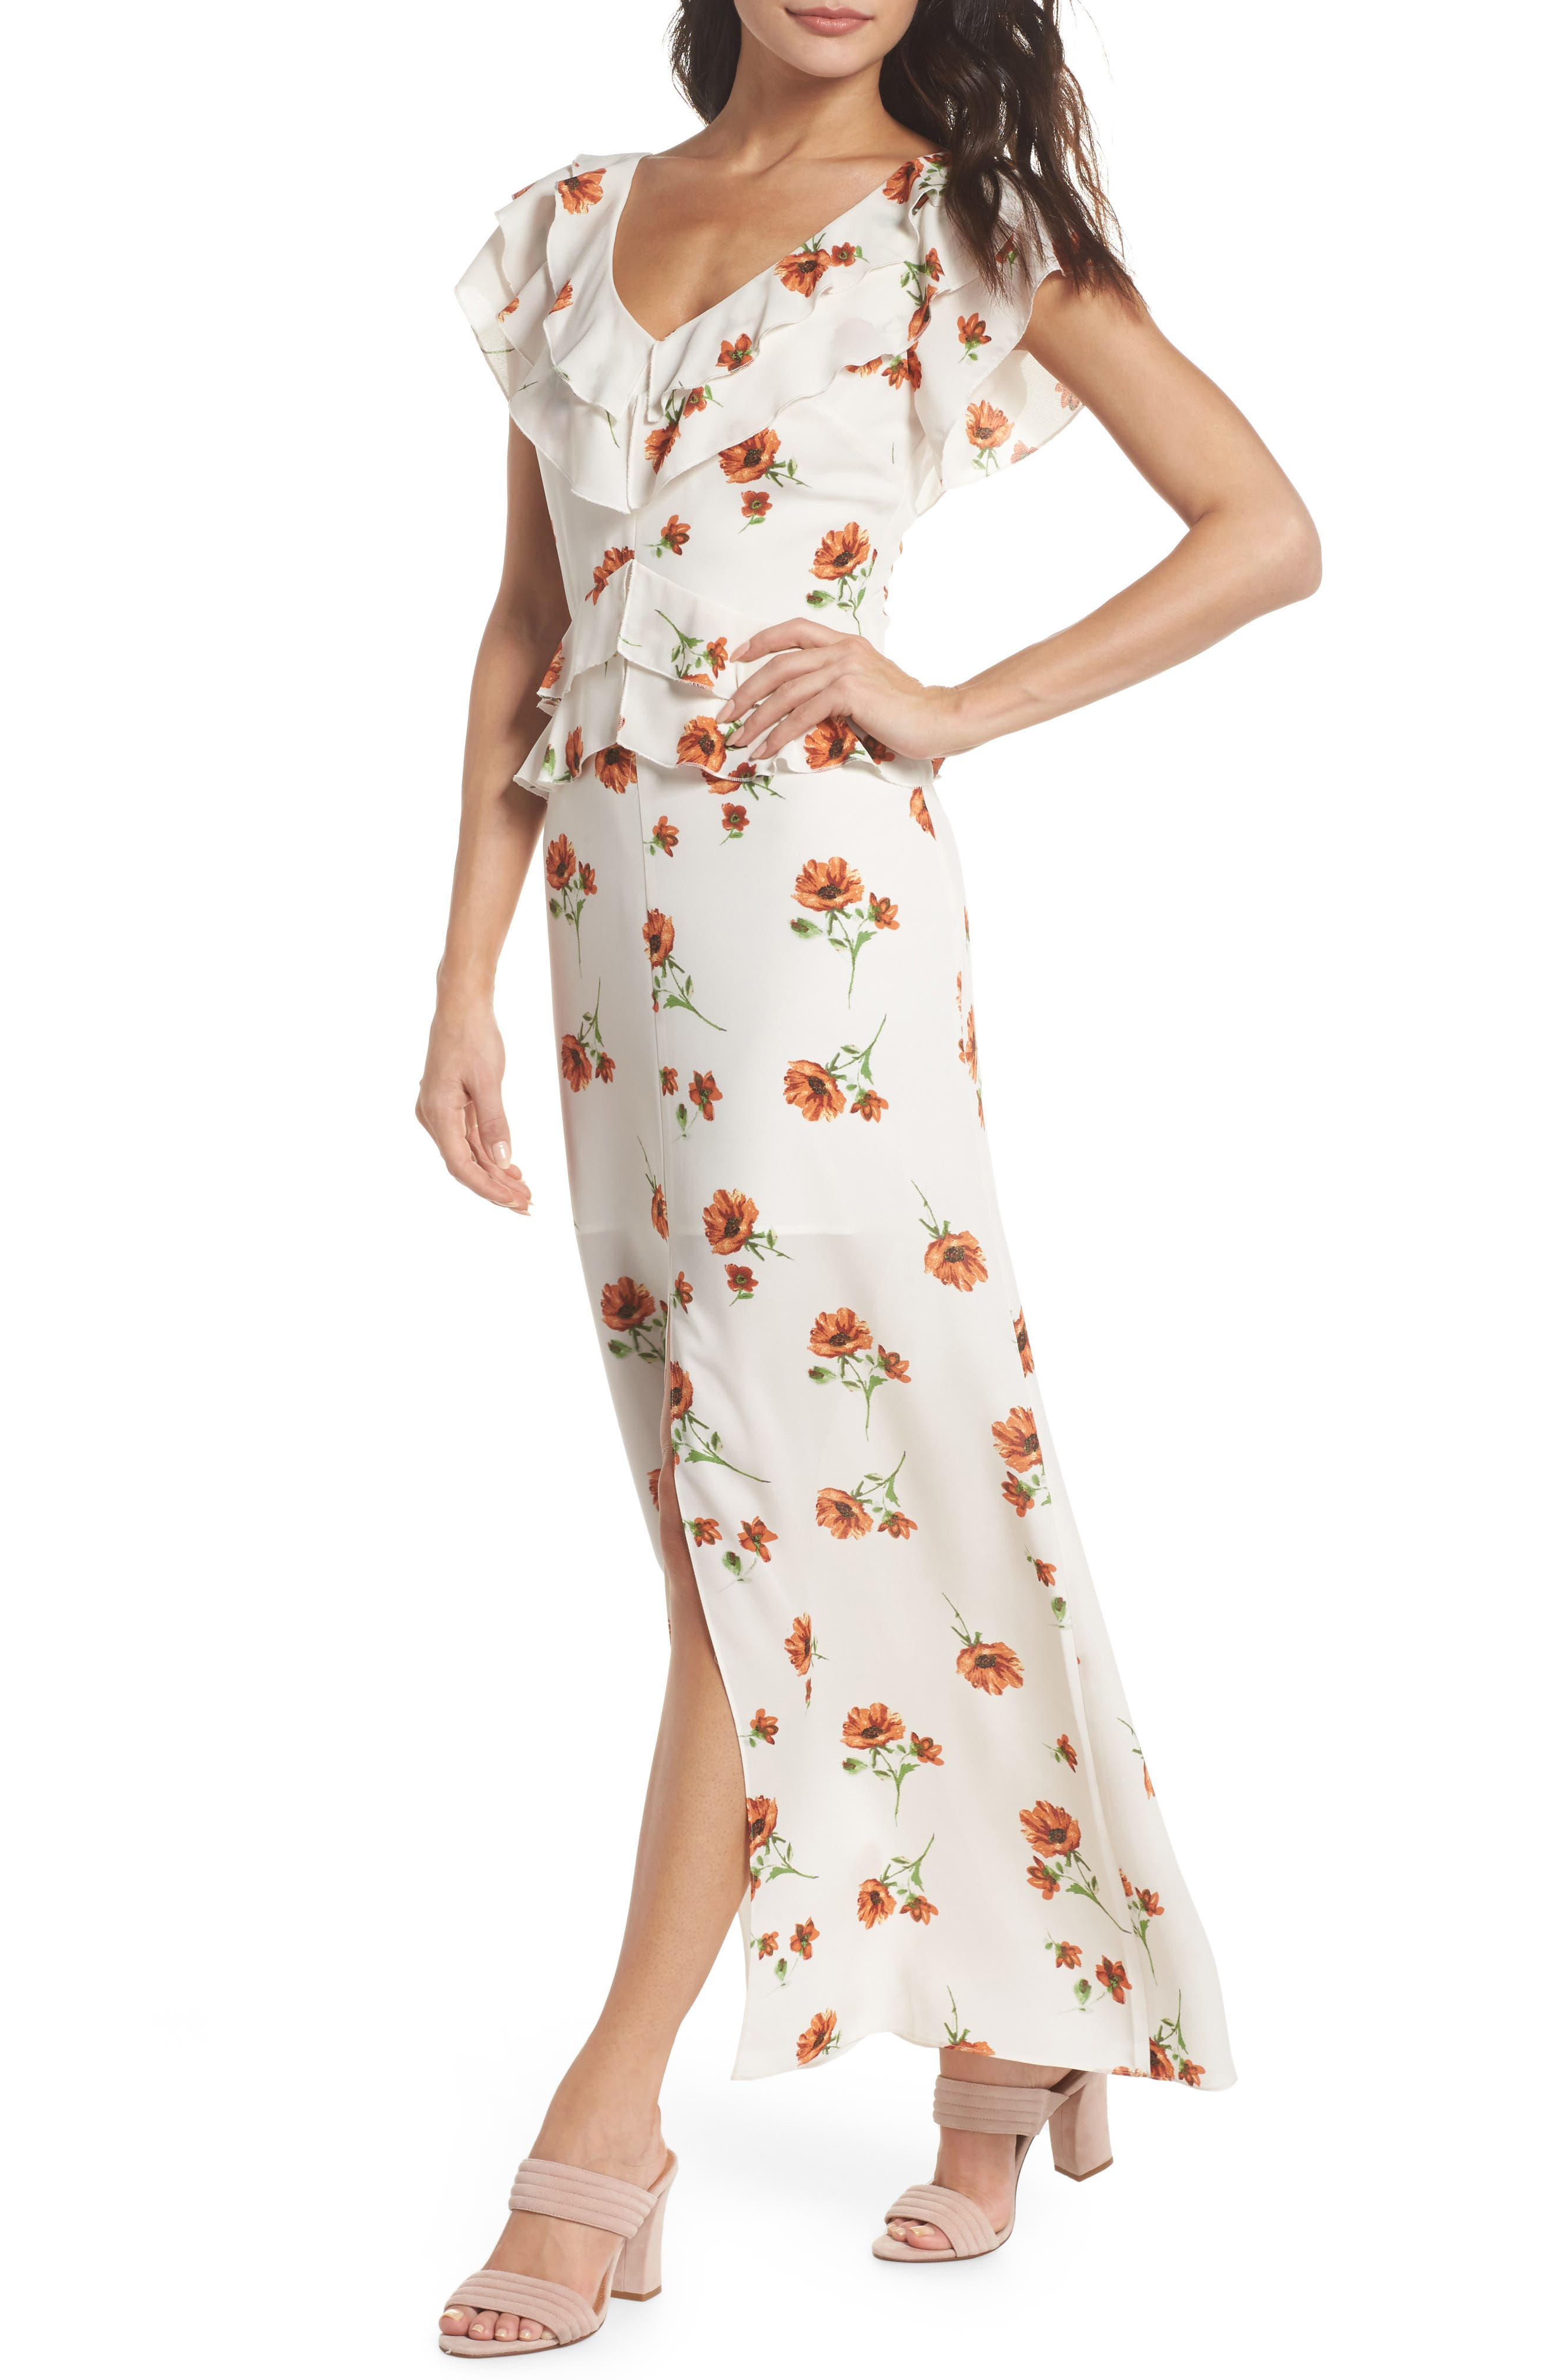 Alternate Image 1 Selected - Ali & Jay Darling Nikki Floral Maxi Dress